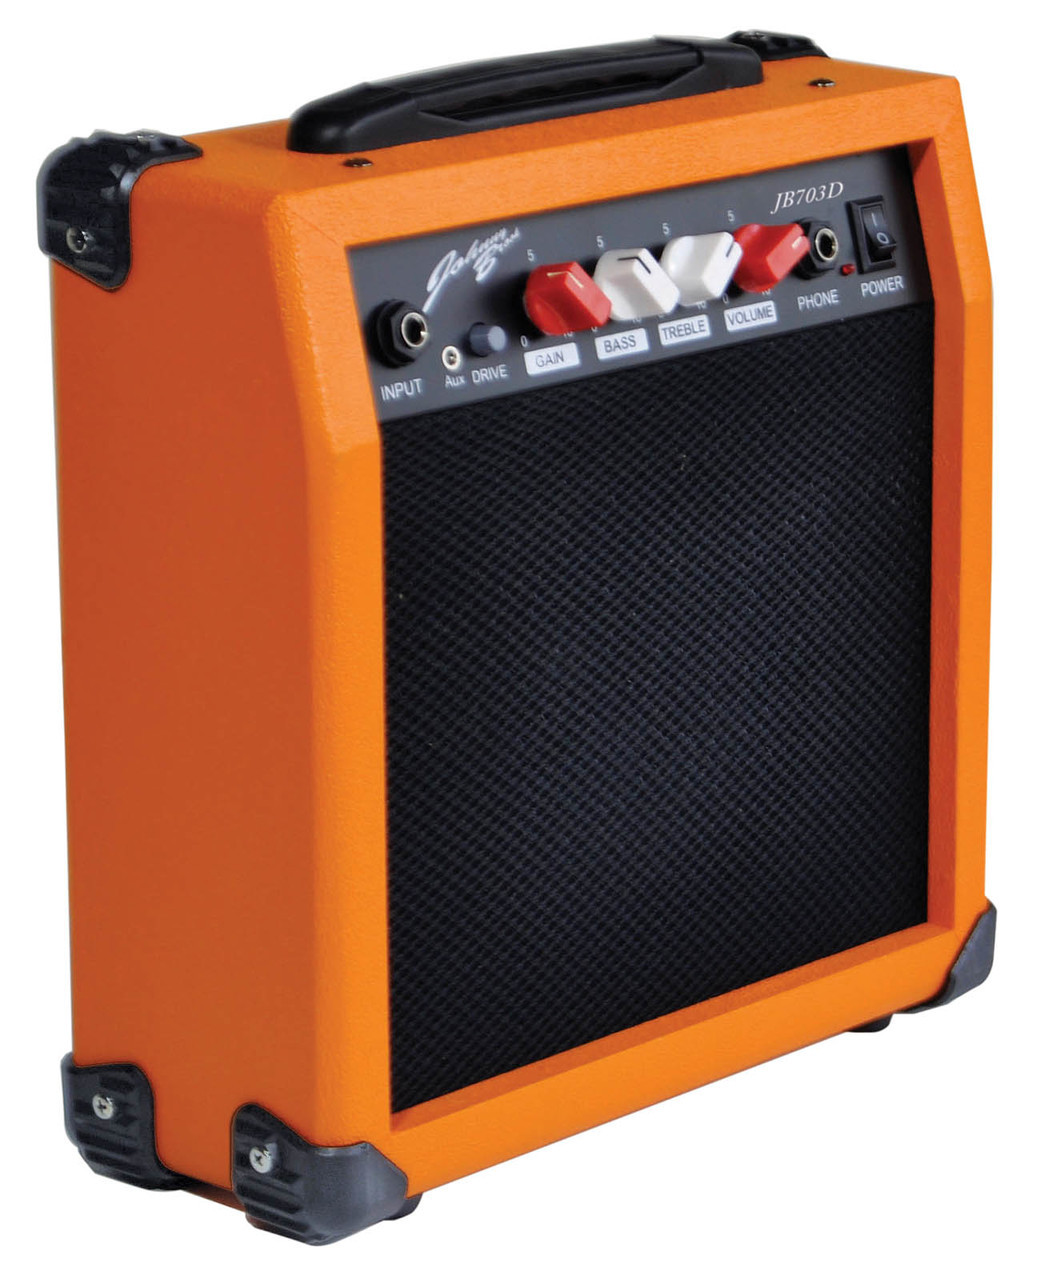 Johnny Brook Portable Personal Guitar Amplifier with Overdrive//Distortion Effect